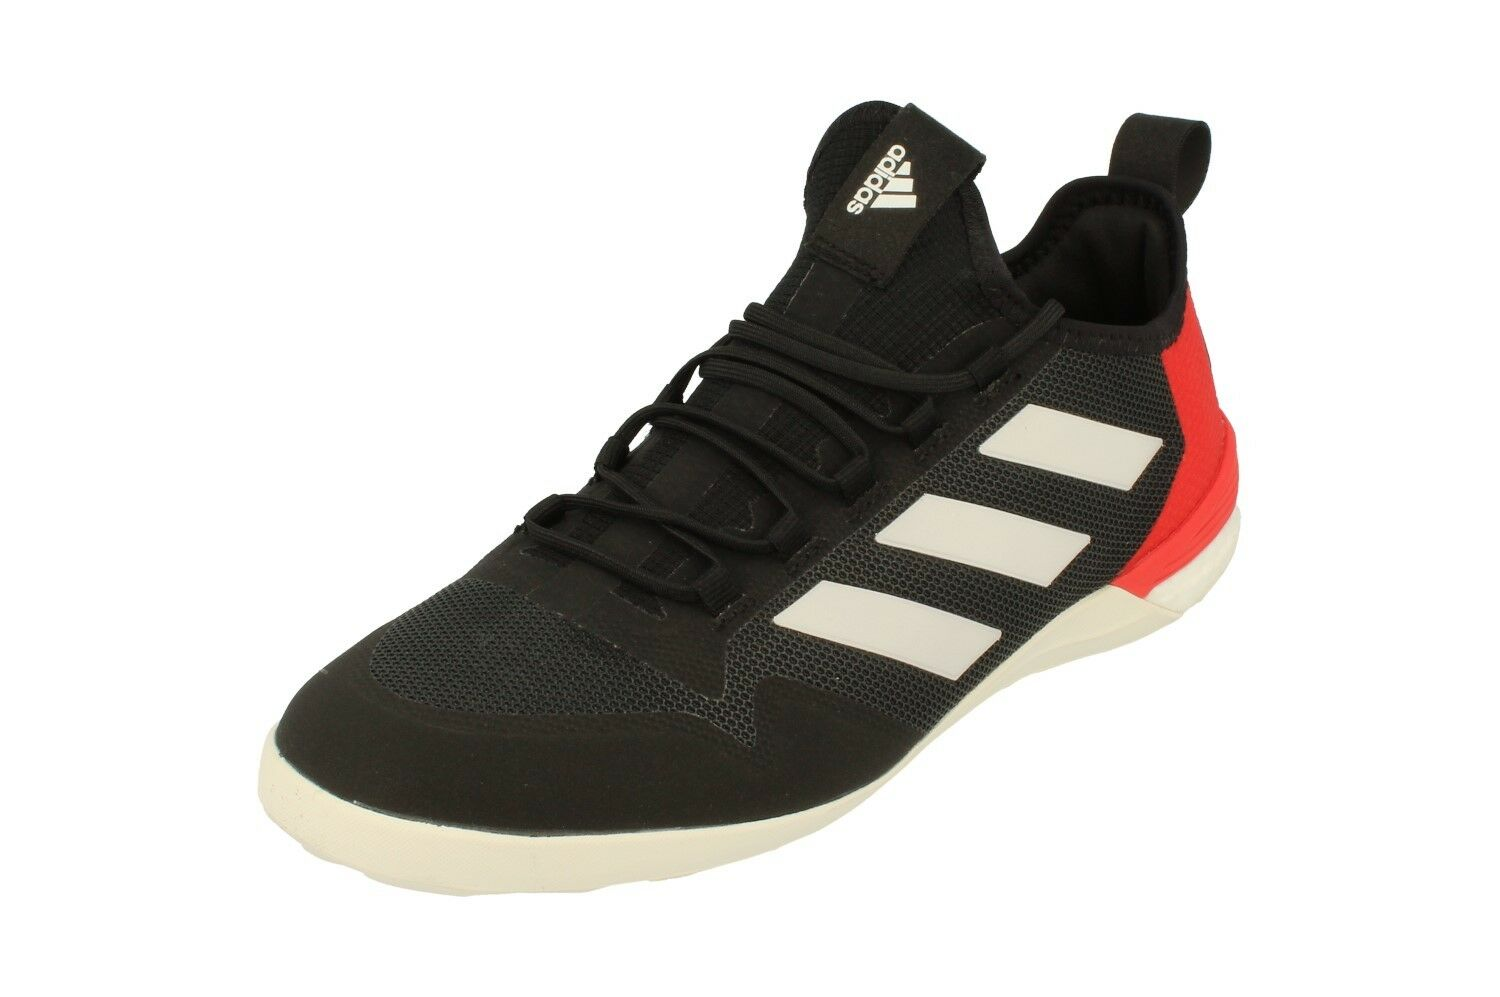 Adidas Ace Tango 17.1 In Mens Football Boots Soccer shoes BA8537